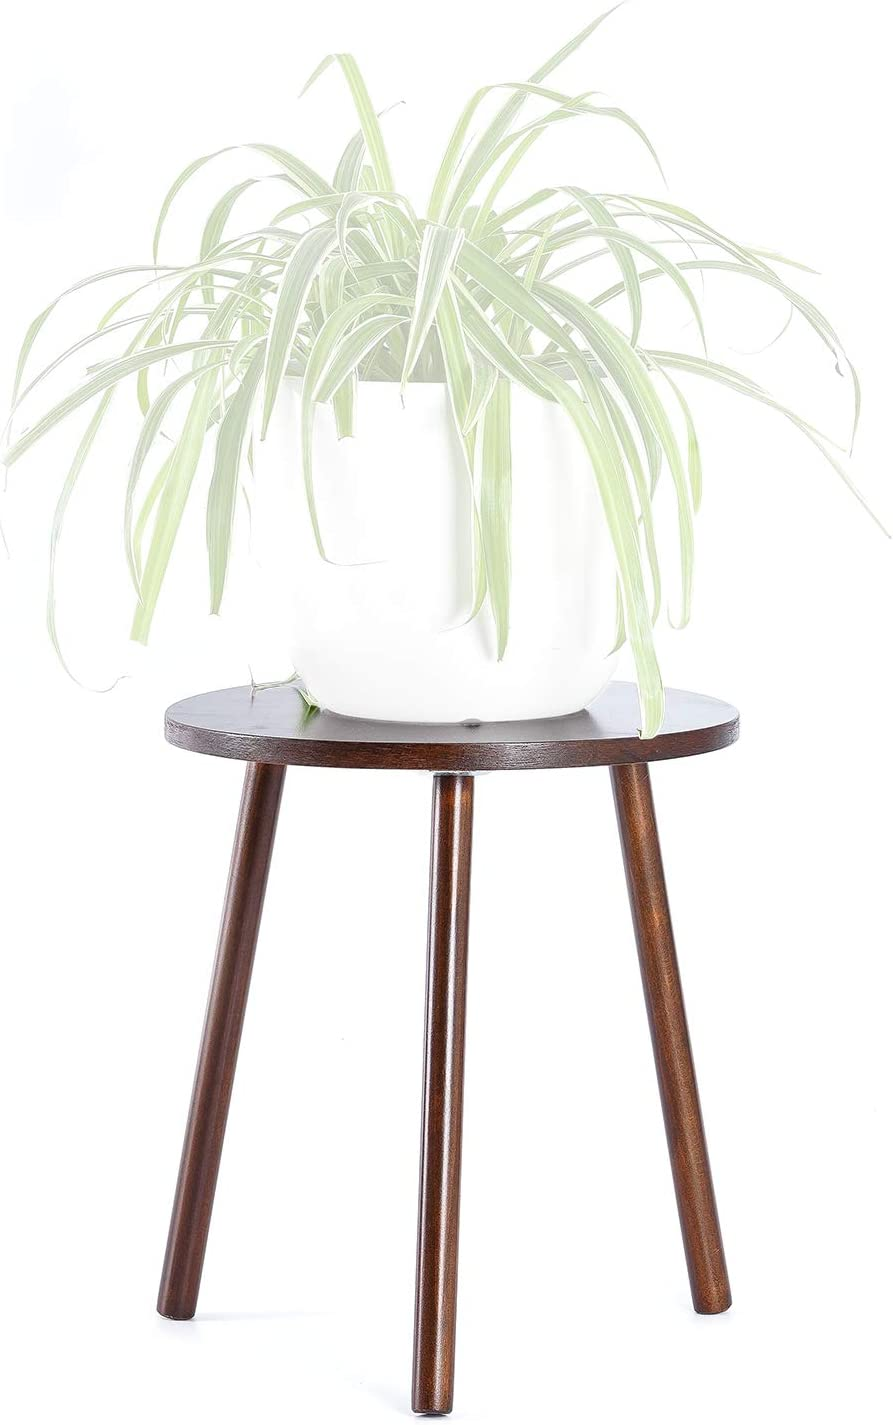 Black Planter Not Included Small Round Side Table Modern Home D/écor TIMEYARD Mid Century Plant Stand Indoor Tall Plant Stand Wood Planter Holder for Flower Pots